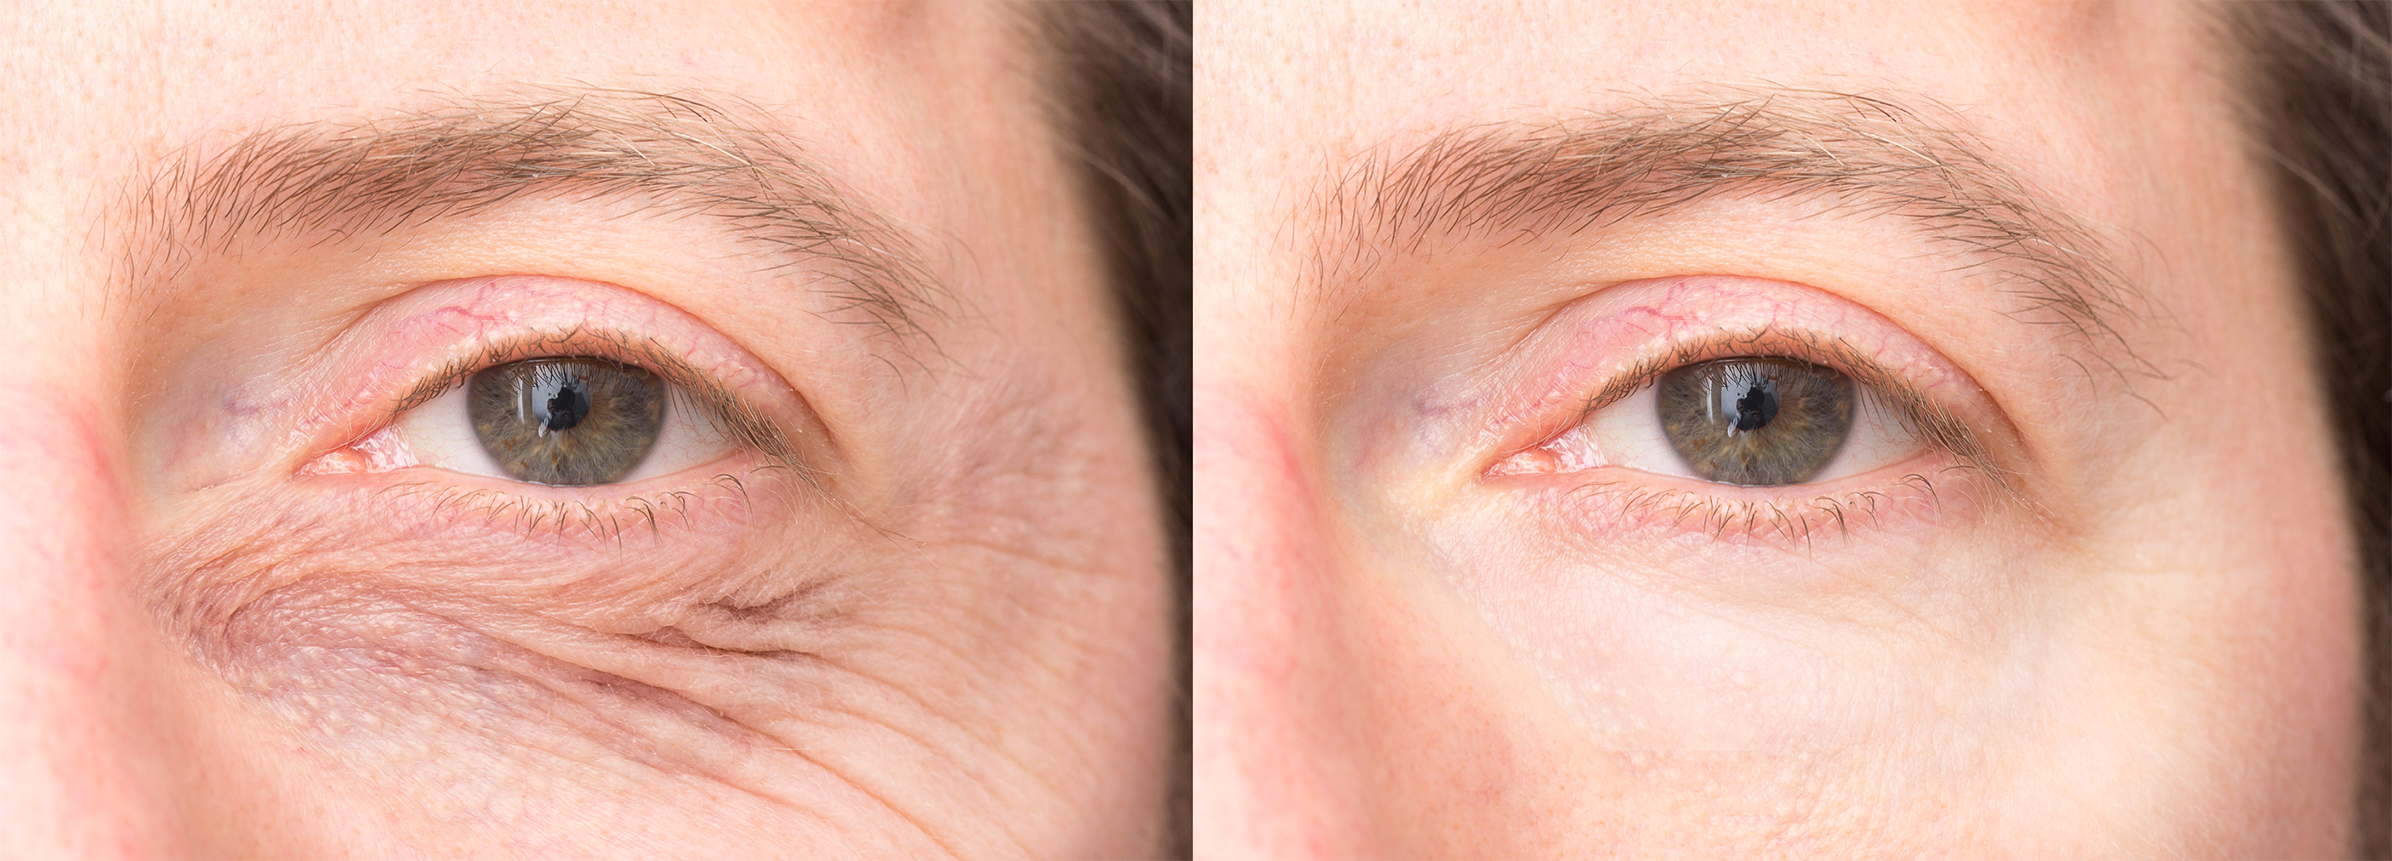 eyelid lifts before and after